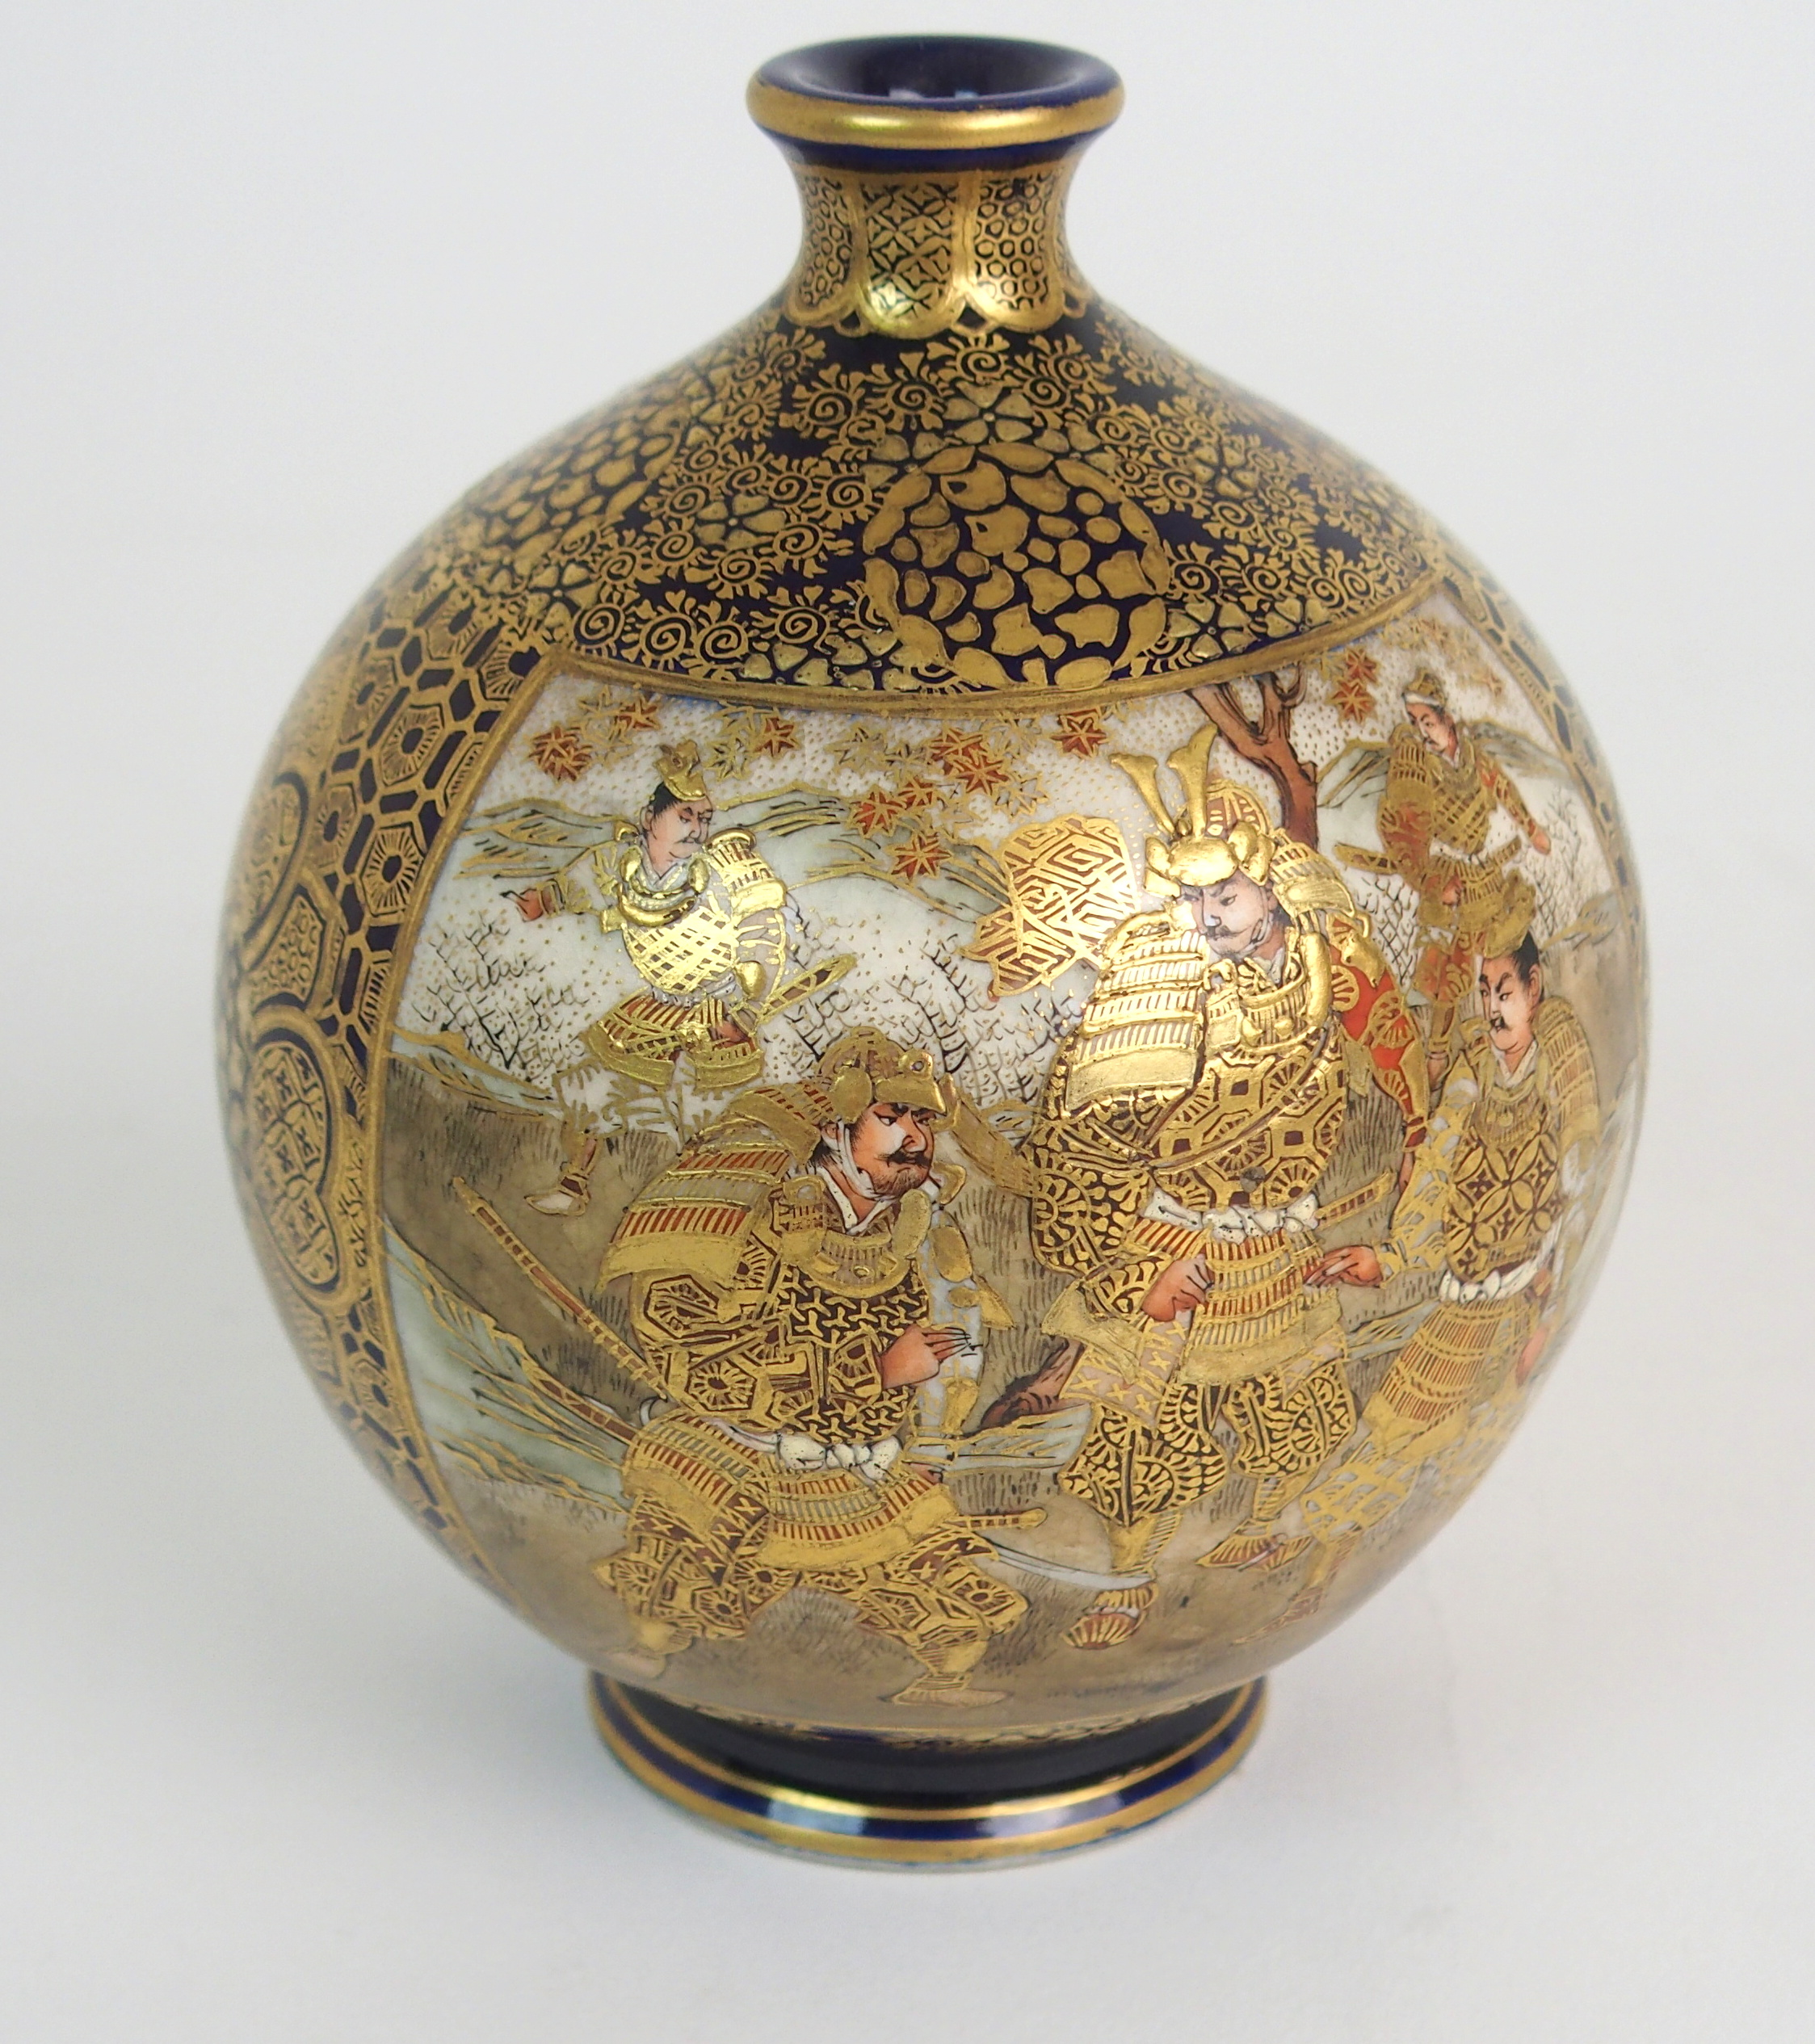 Lot 45 - A SATSUMA GLOBULAR VASE decorated with a panel of Samurai and a panel of female figures, divided